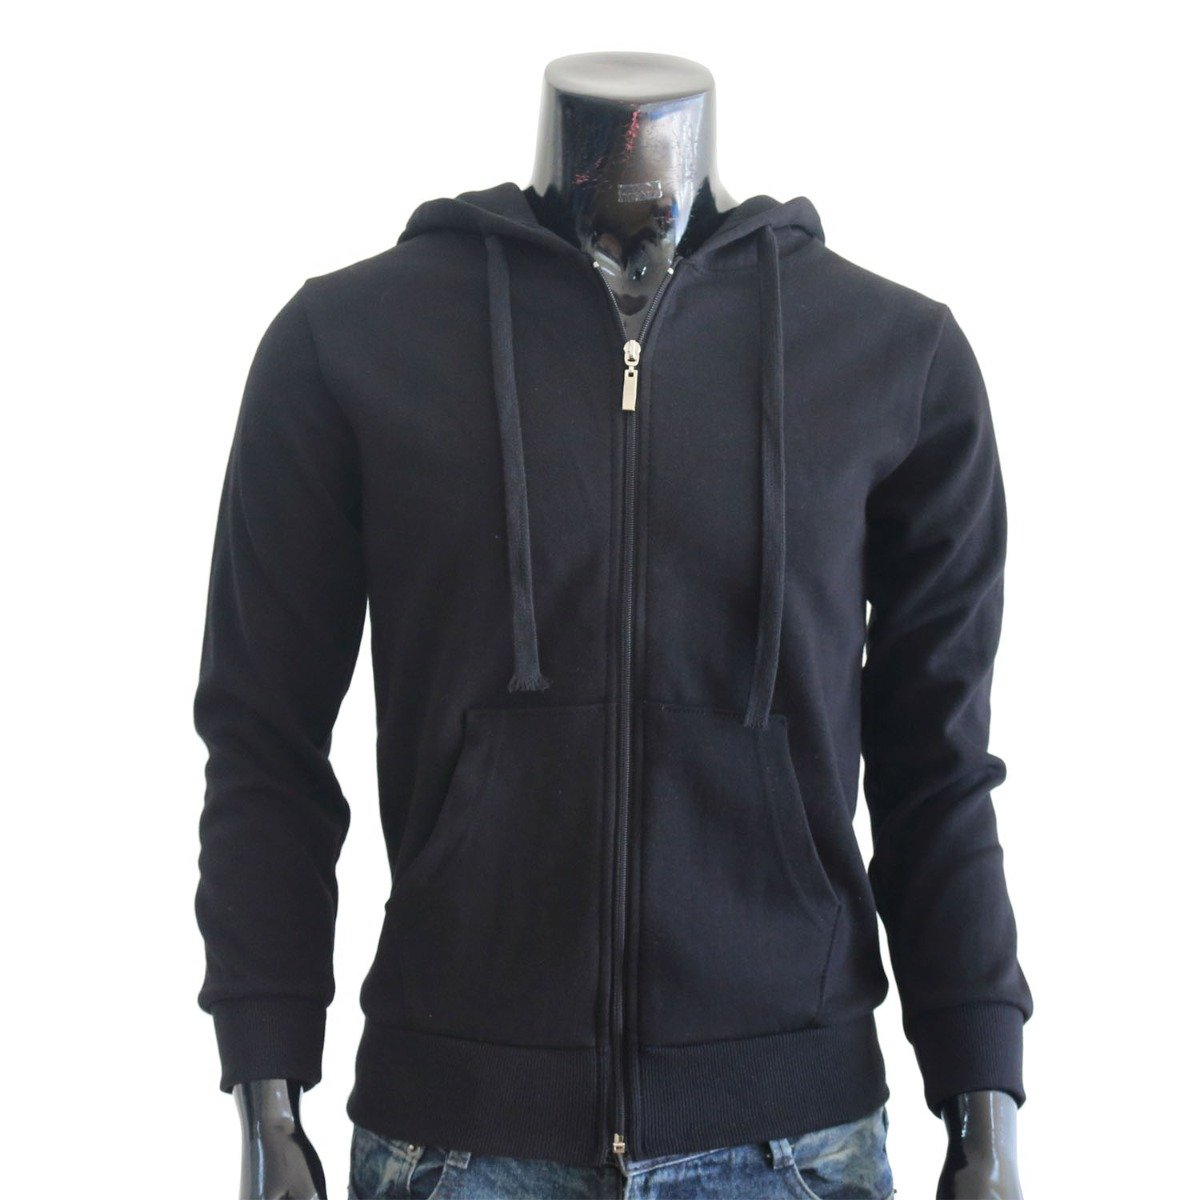 Amazon.com: BCPOLO Mens Zip Hoodie Fleece Full Zip Cotton Plain Hoodie Jackets: Clothing